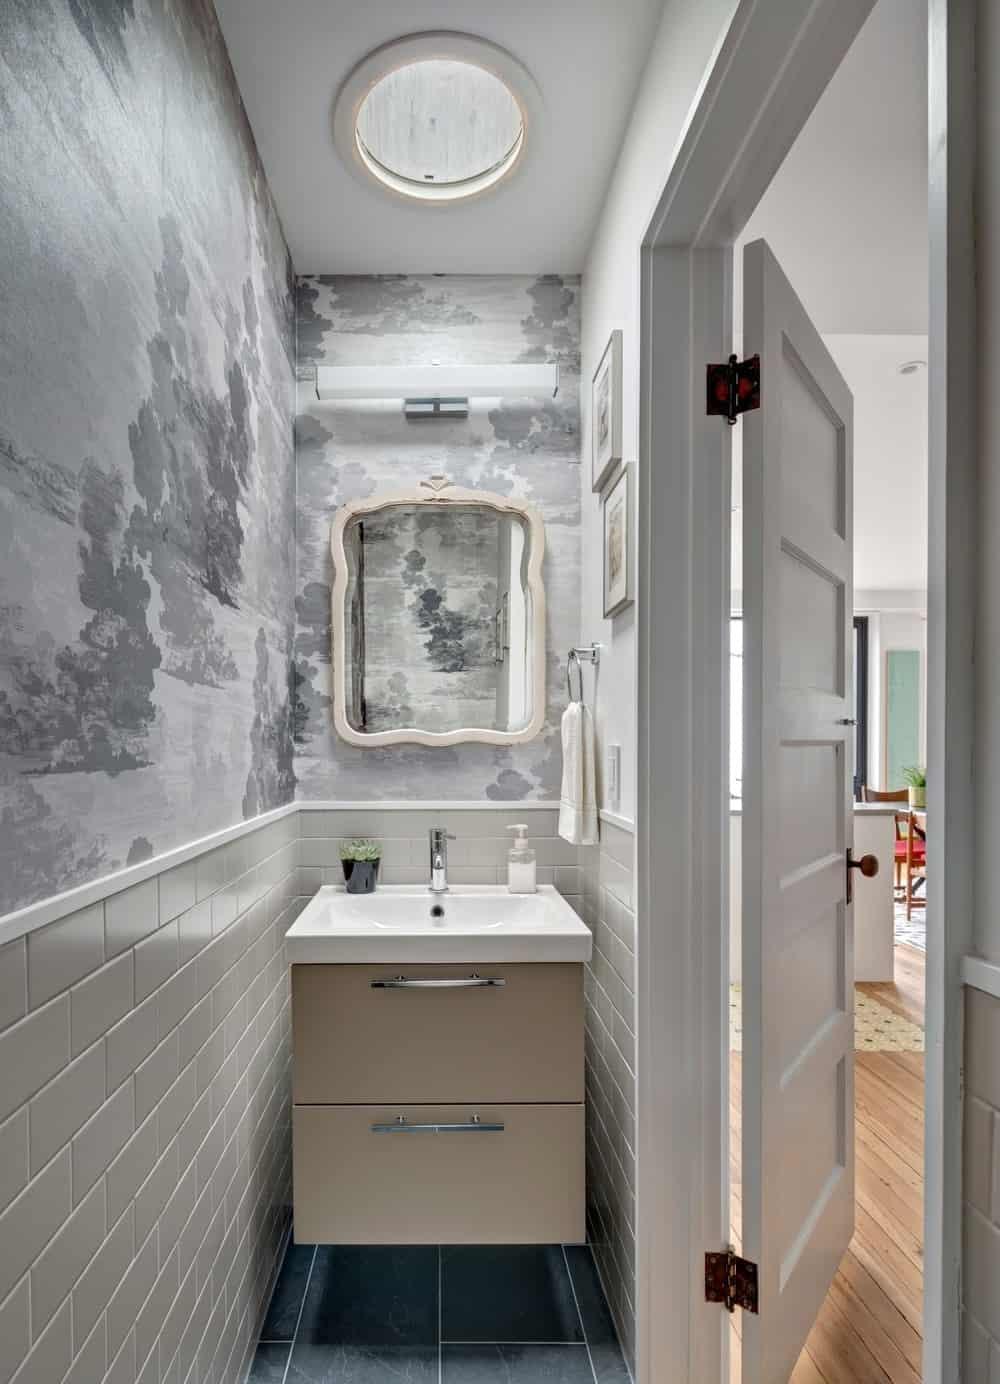 The house also has a washroom with a nice wall and flushmount lighting. Photo Credit: Francis Dzikowski/OTTO